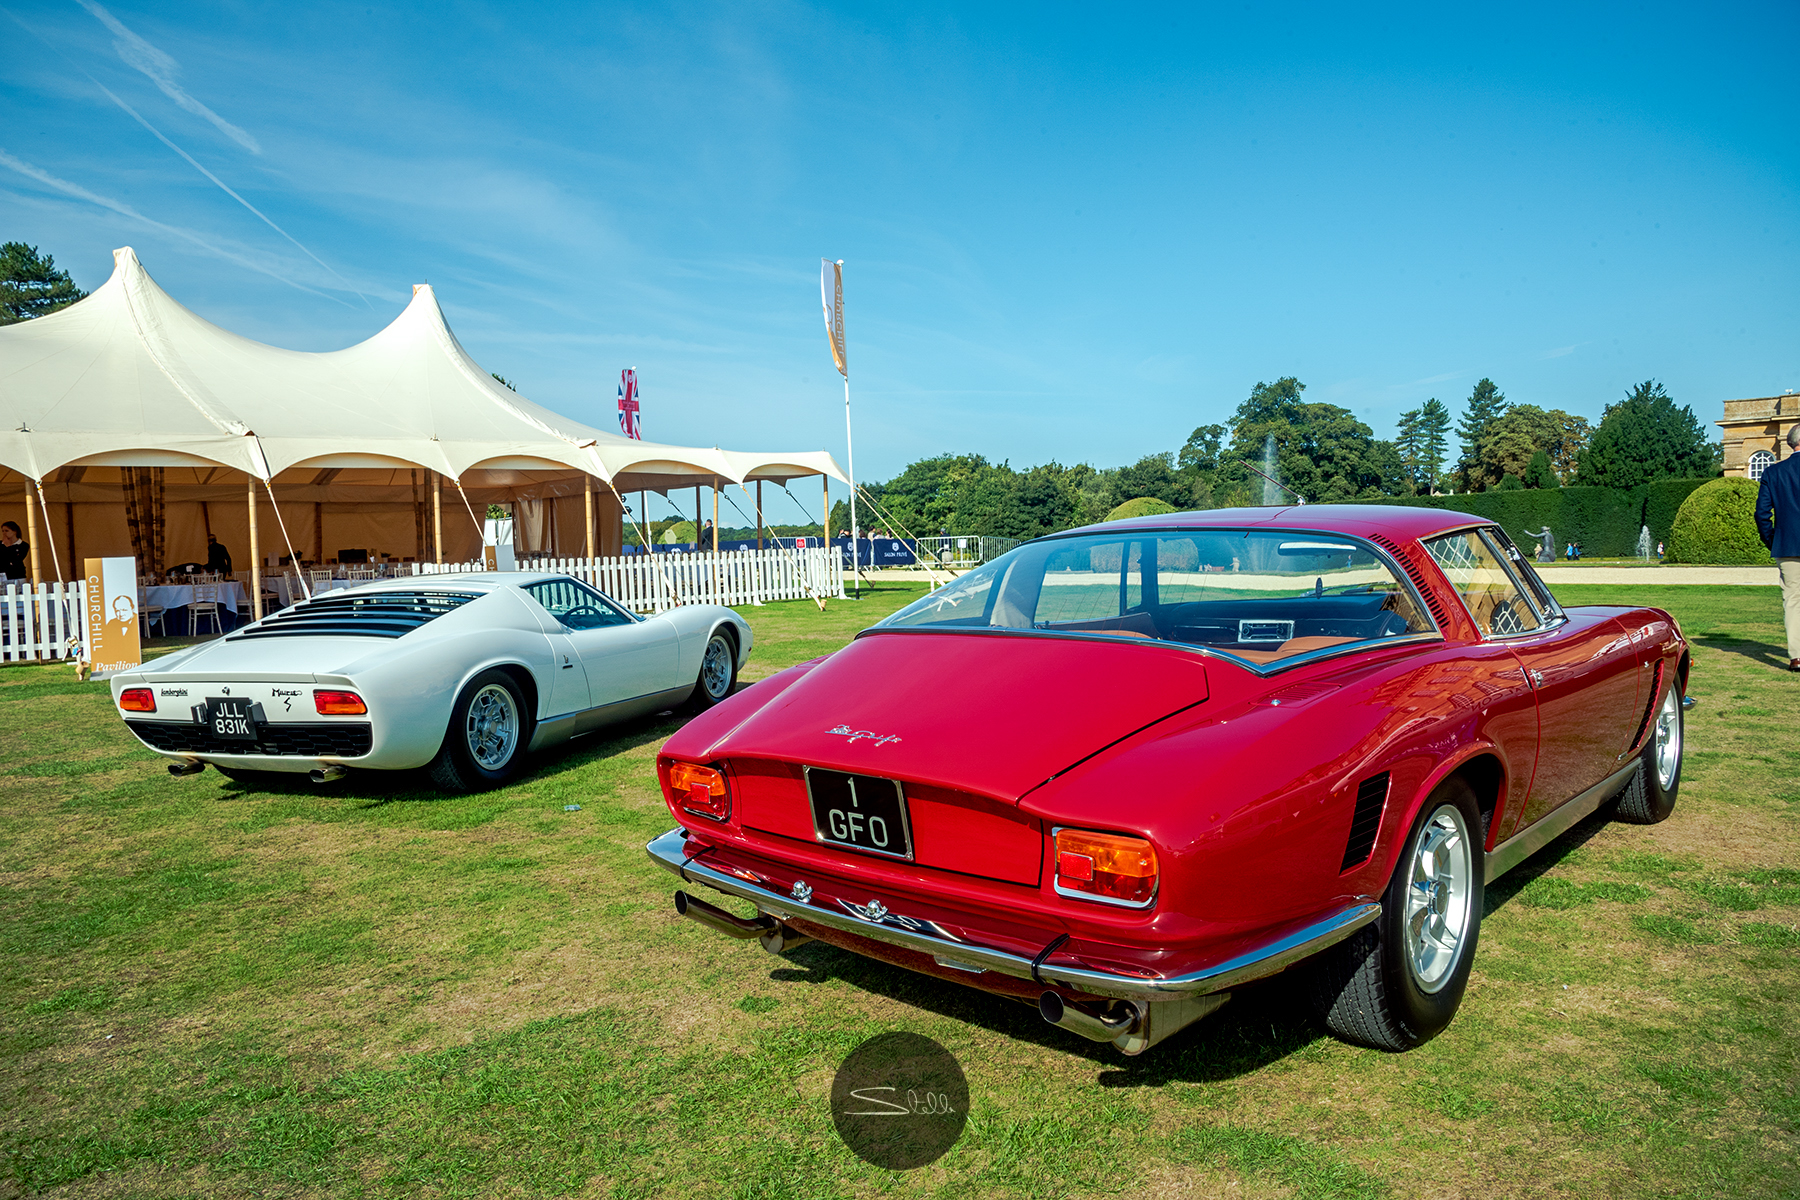 Stella Scordellis Salon Prive 2018 18 Watermarked.jpg